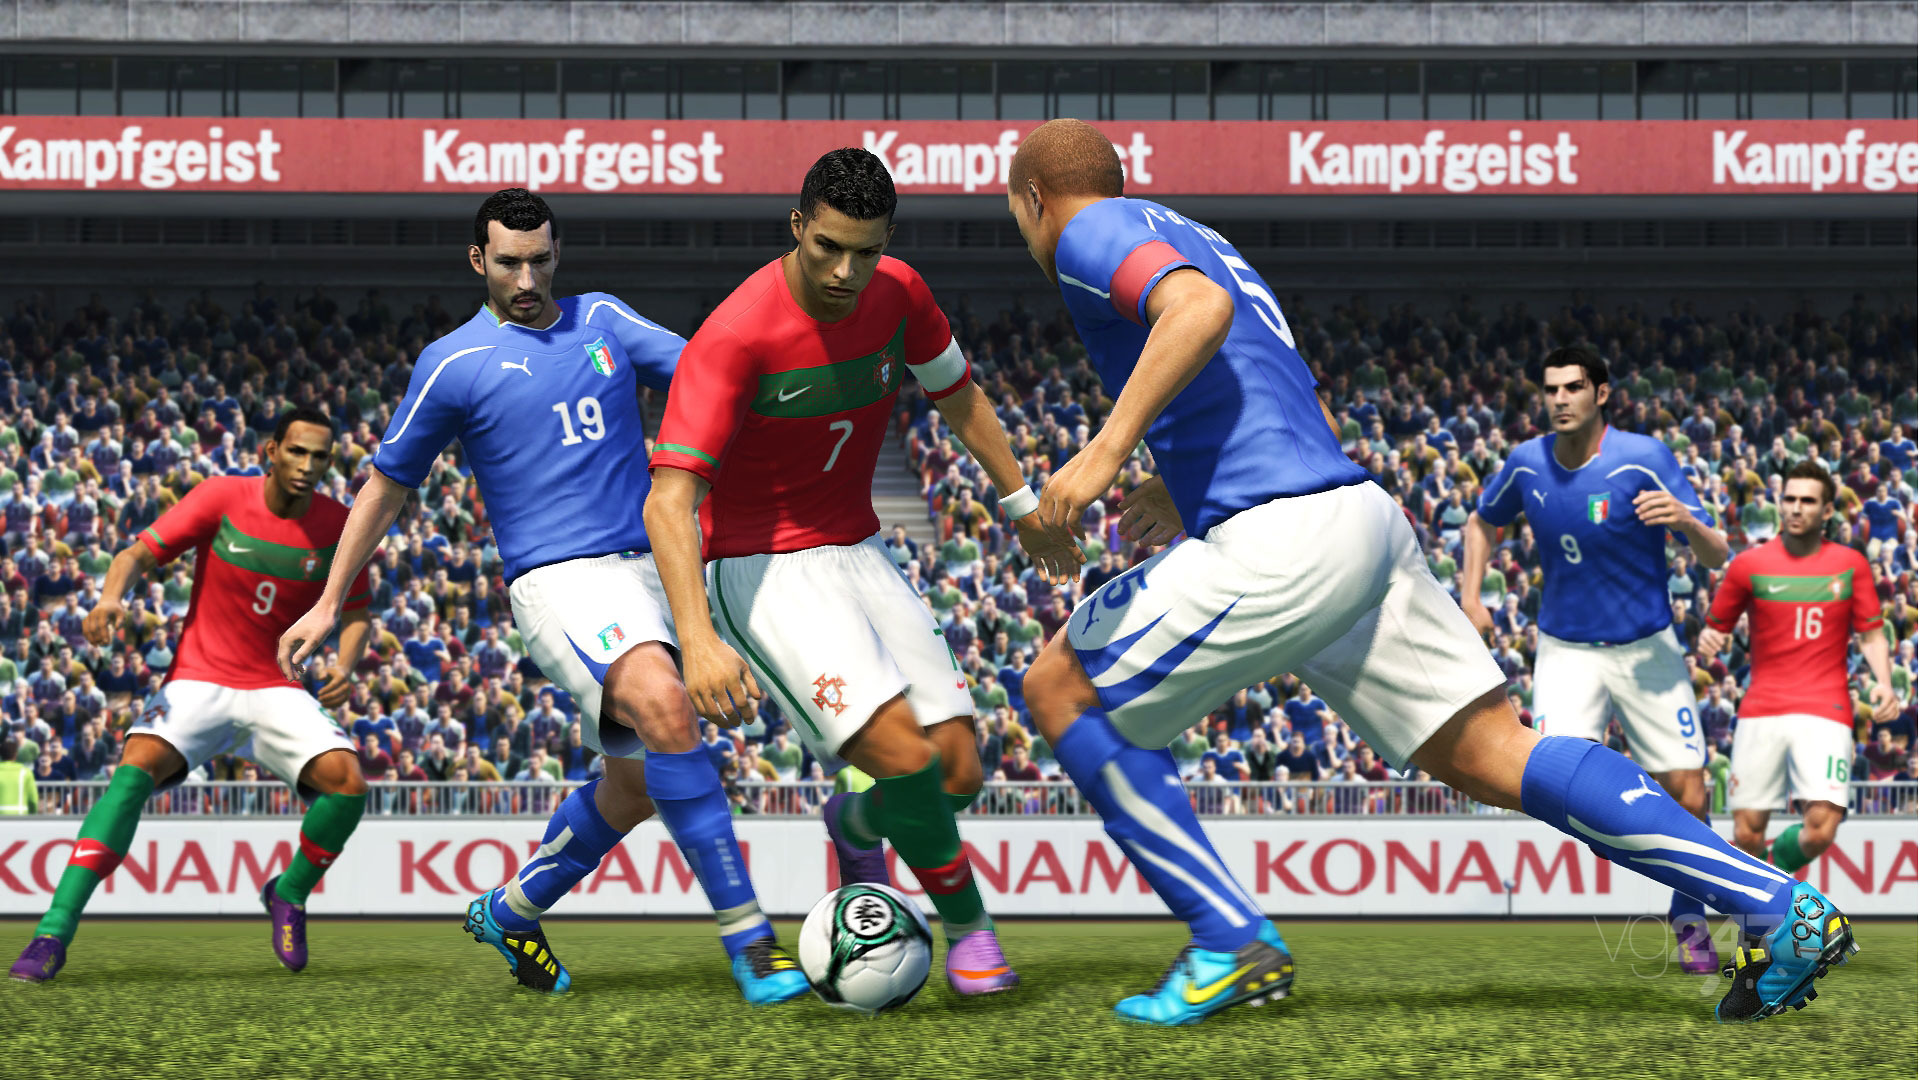 http://assets.vg247.com/current//2010/07/PES2011_Portugal_Italy_bmp_jpgcopy.jpg